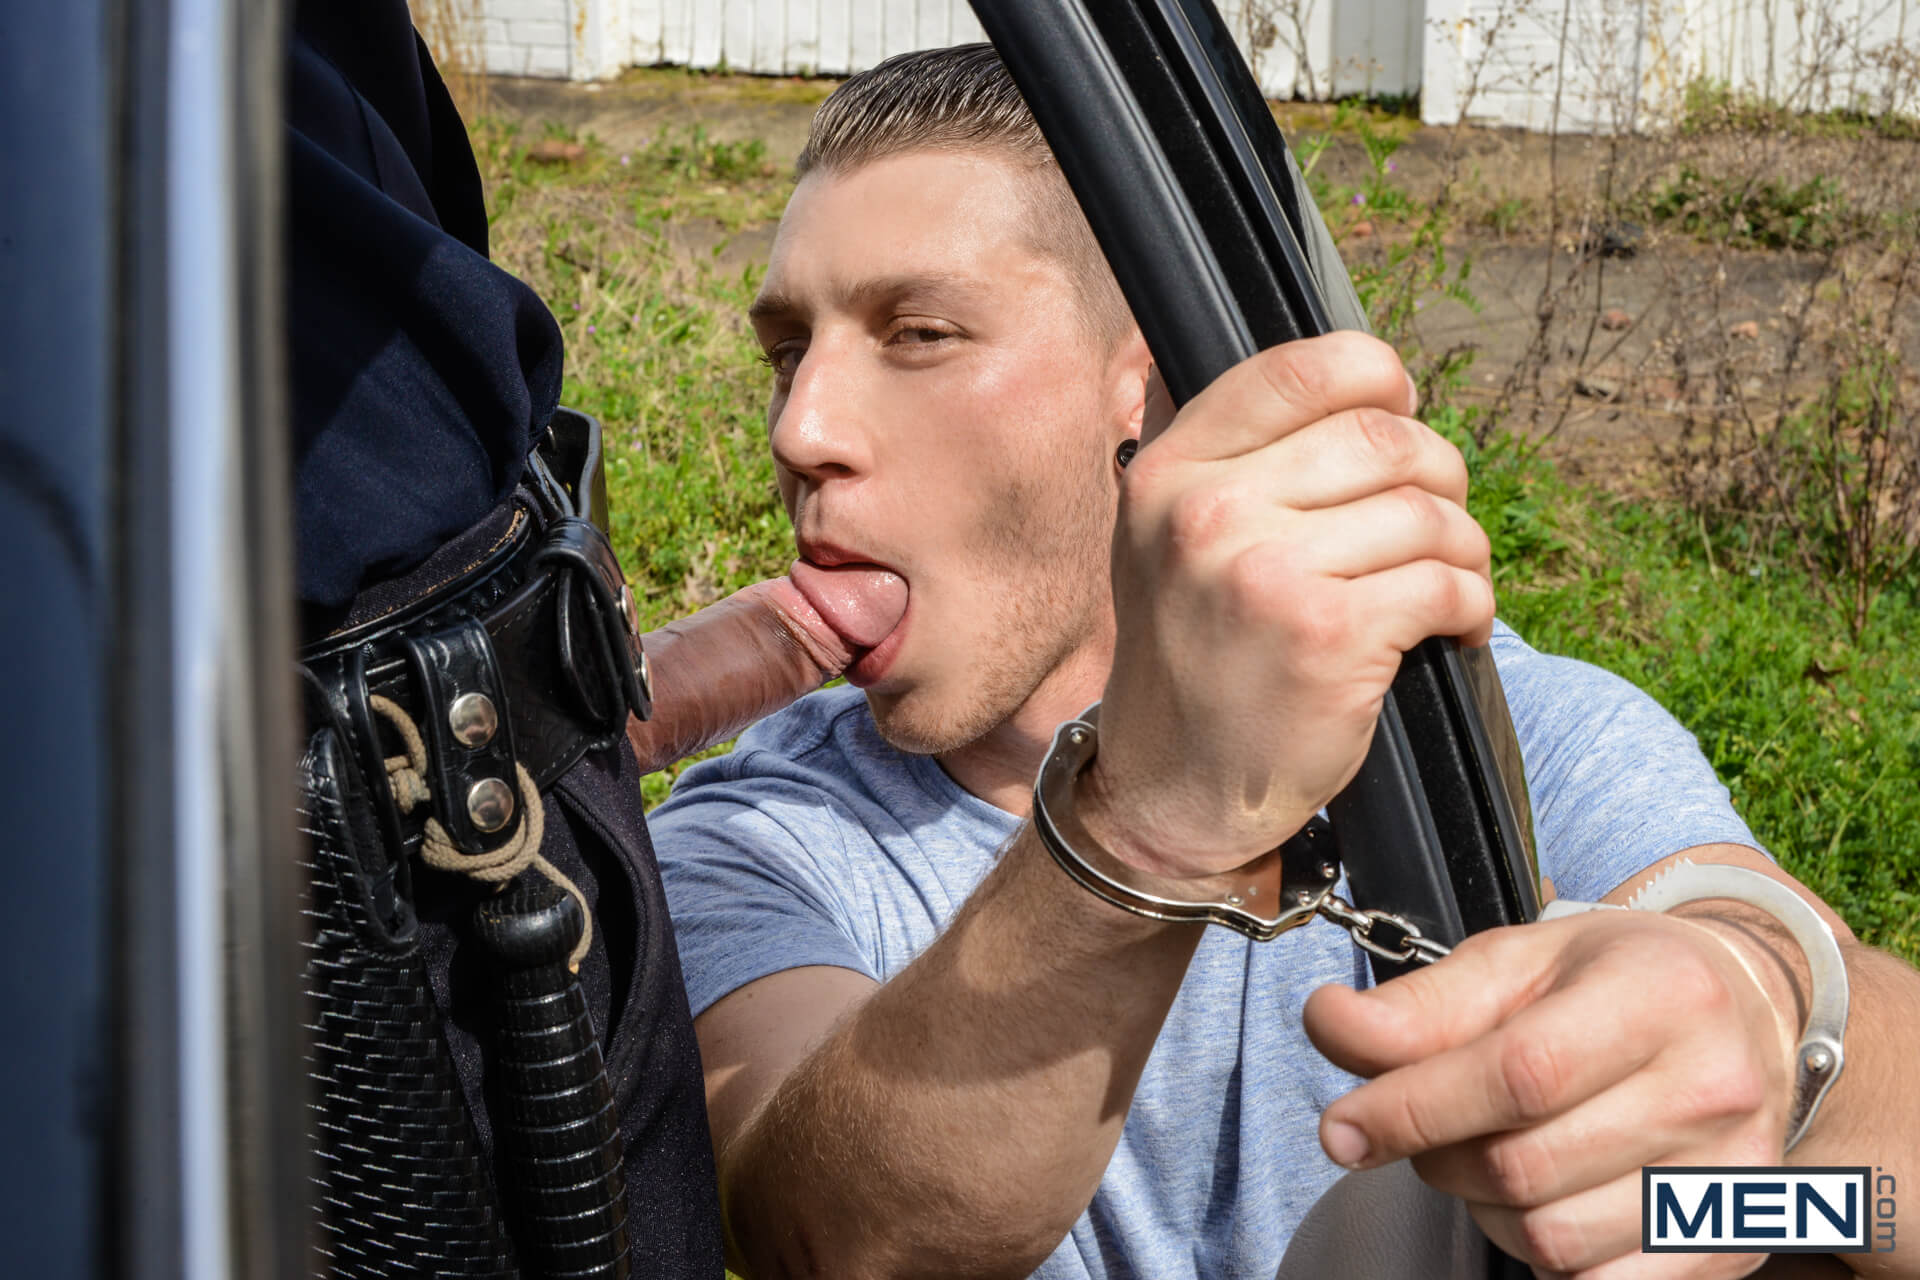 men drill my hole americas finest part 3 jj knight paul canon gay porn blog image 10